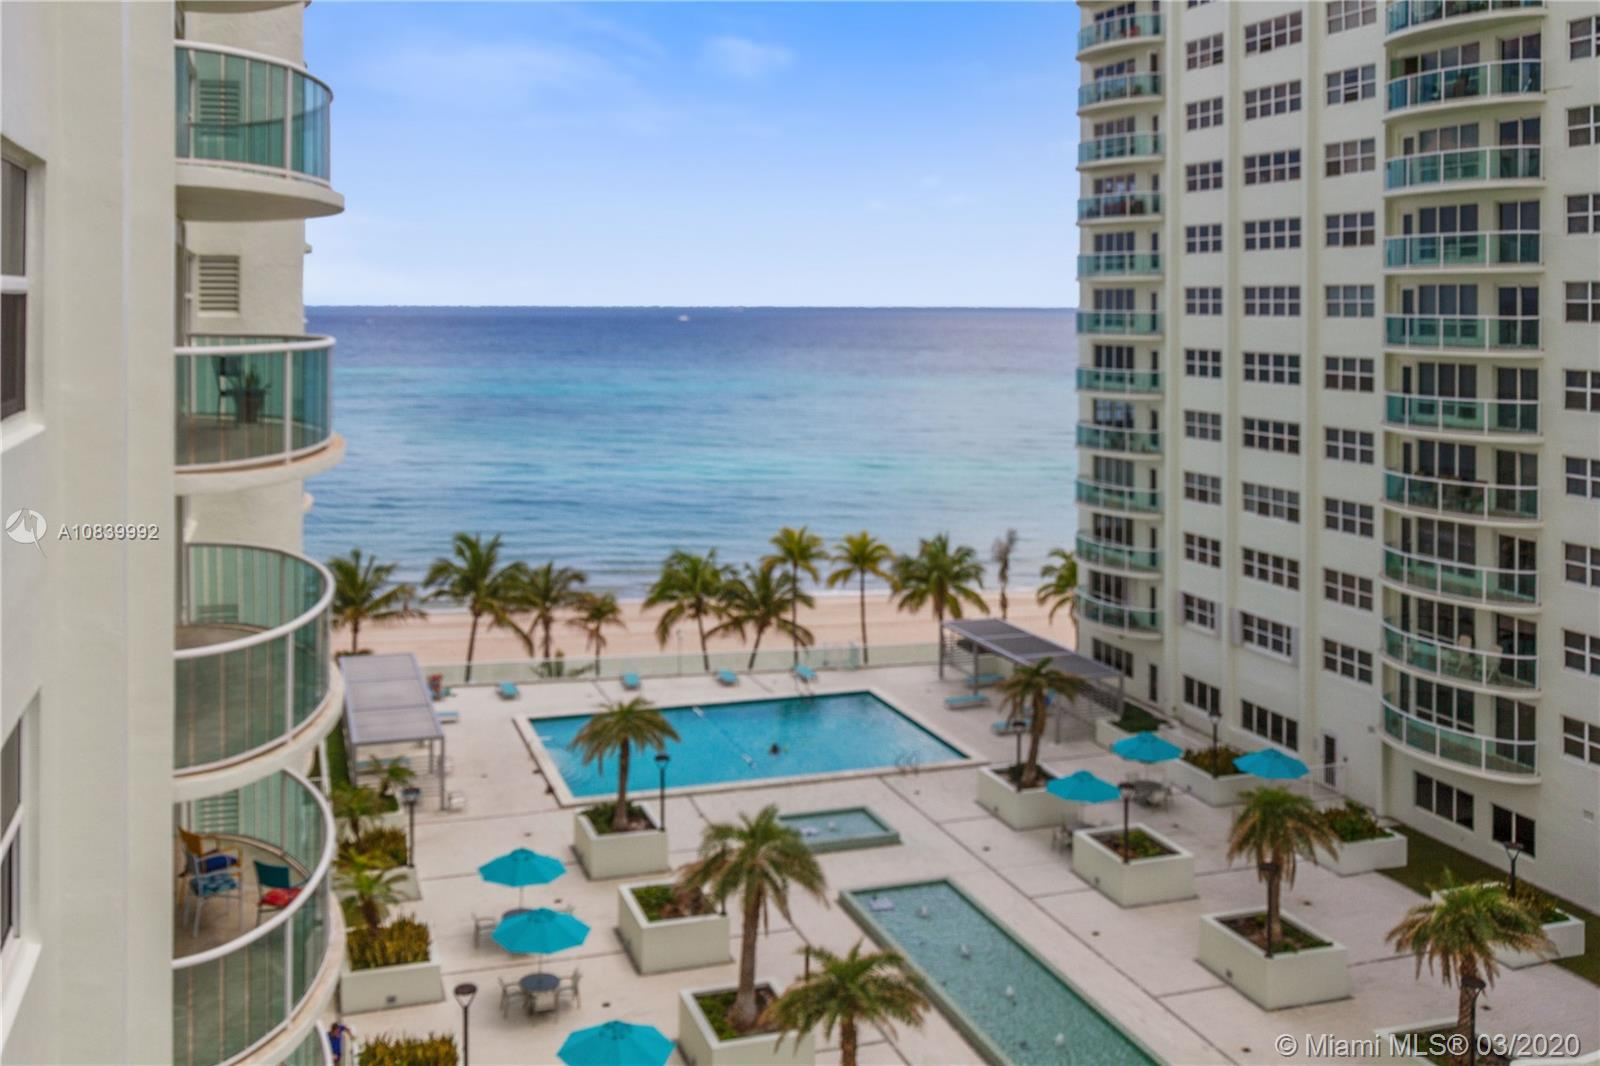 Relax & enjoy oceanfront living in this bright & spacious 2/2 condo located steps from the beach. This corner unit offers South & Eastern views. Hurricane windows and doors throughout. Large master bedroom with walk-in closet, full vanity & large bathroom. Washer & dryer in unit. The building offers resort-style amenities including a brand-new pool, tennis courts, fitness centers, conference rooms, clubrooms, card rooms, billiard rooms & more. Covered underground parking with 24/7 security & reception. Internet, cable, and water included. Walking distance to great shops & restaurants.